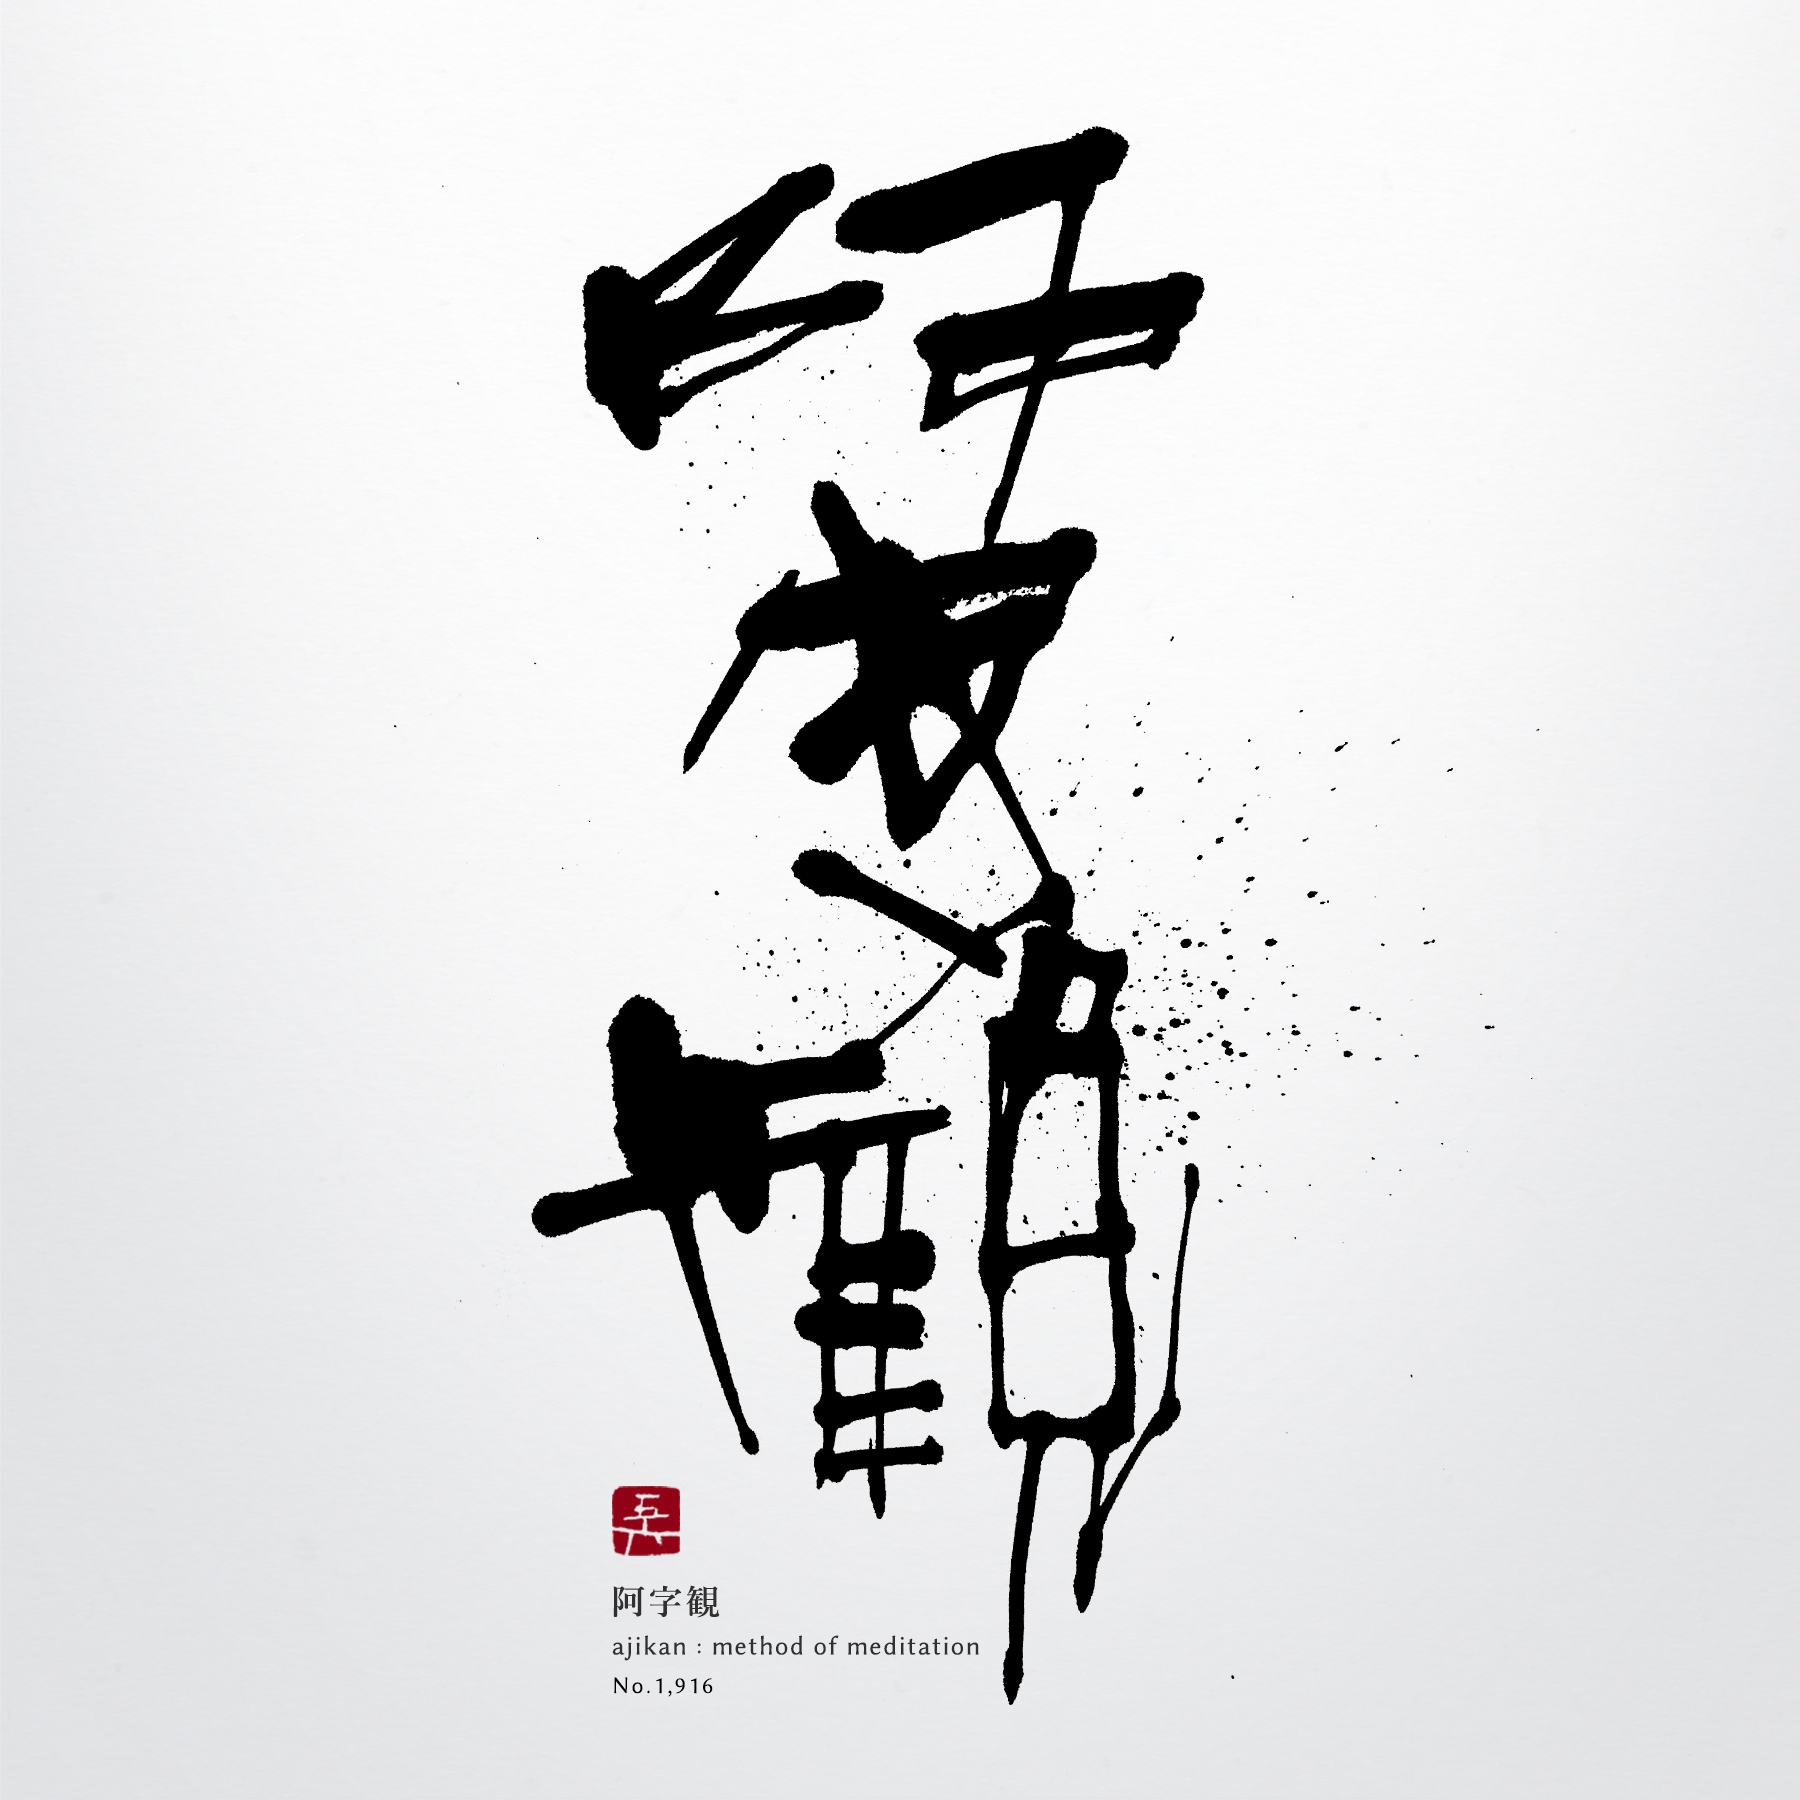 阿字観 | method of meditation 書道作品 japaneseart japanese calligraphy 書家 田川悟郎 Goroh Tagawa